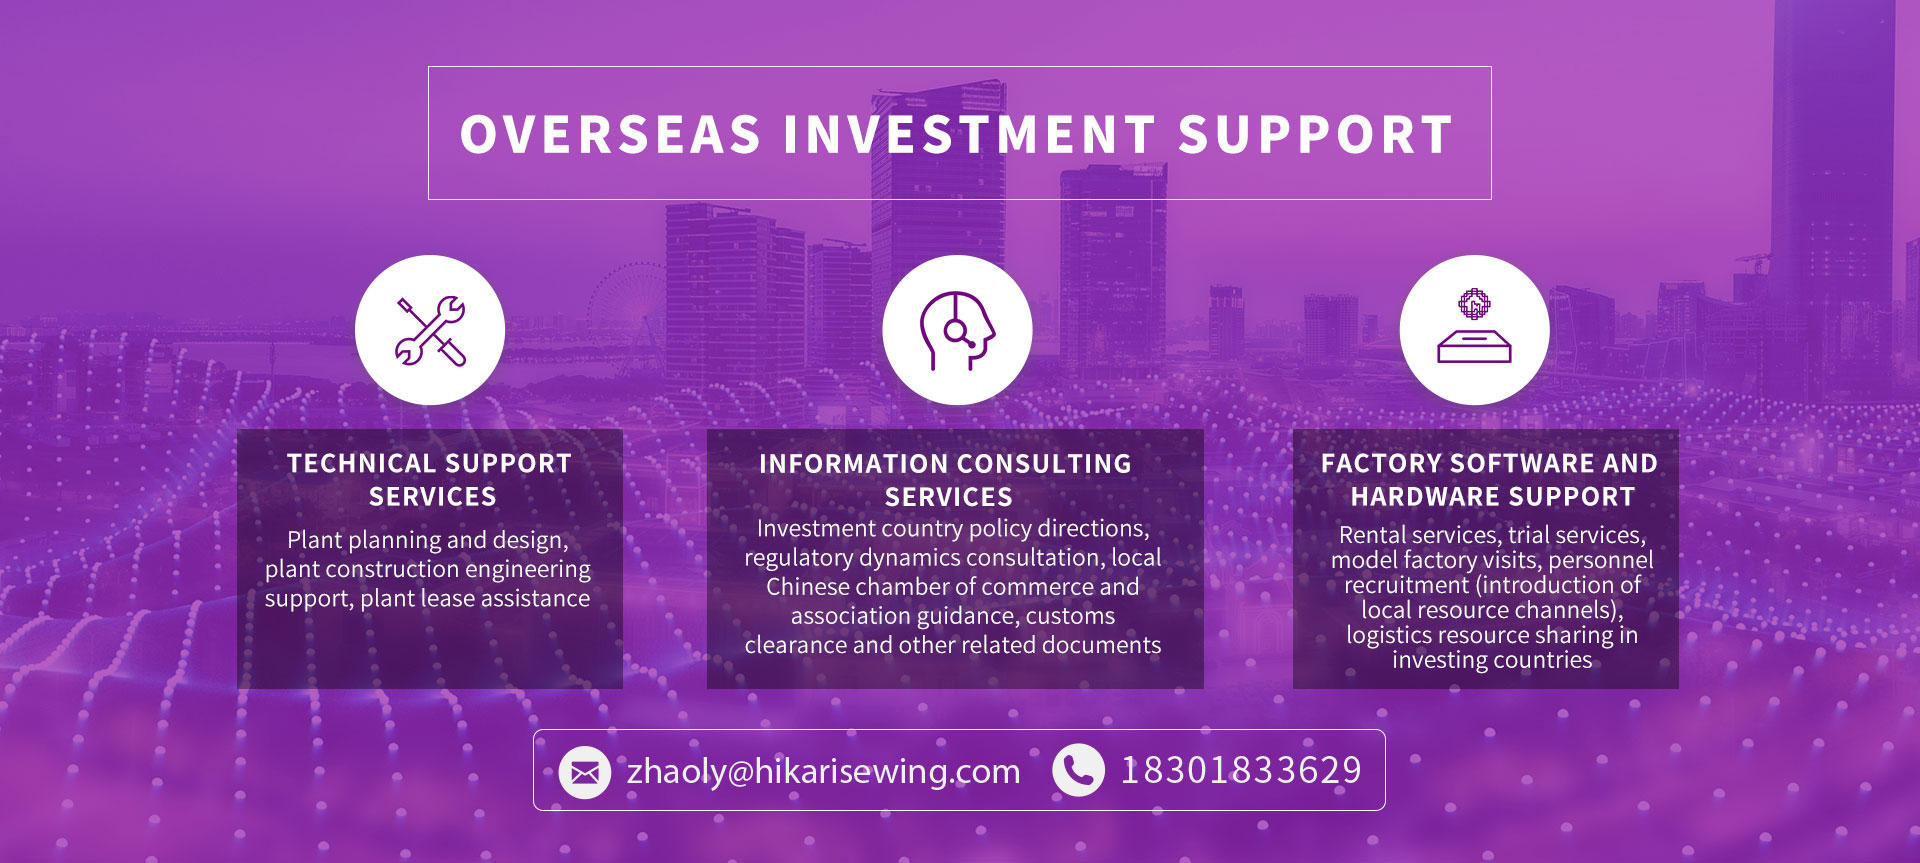 Overseas Investment Support